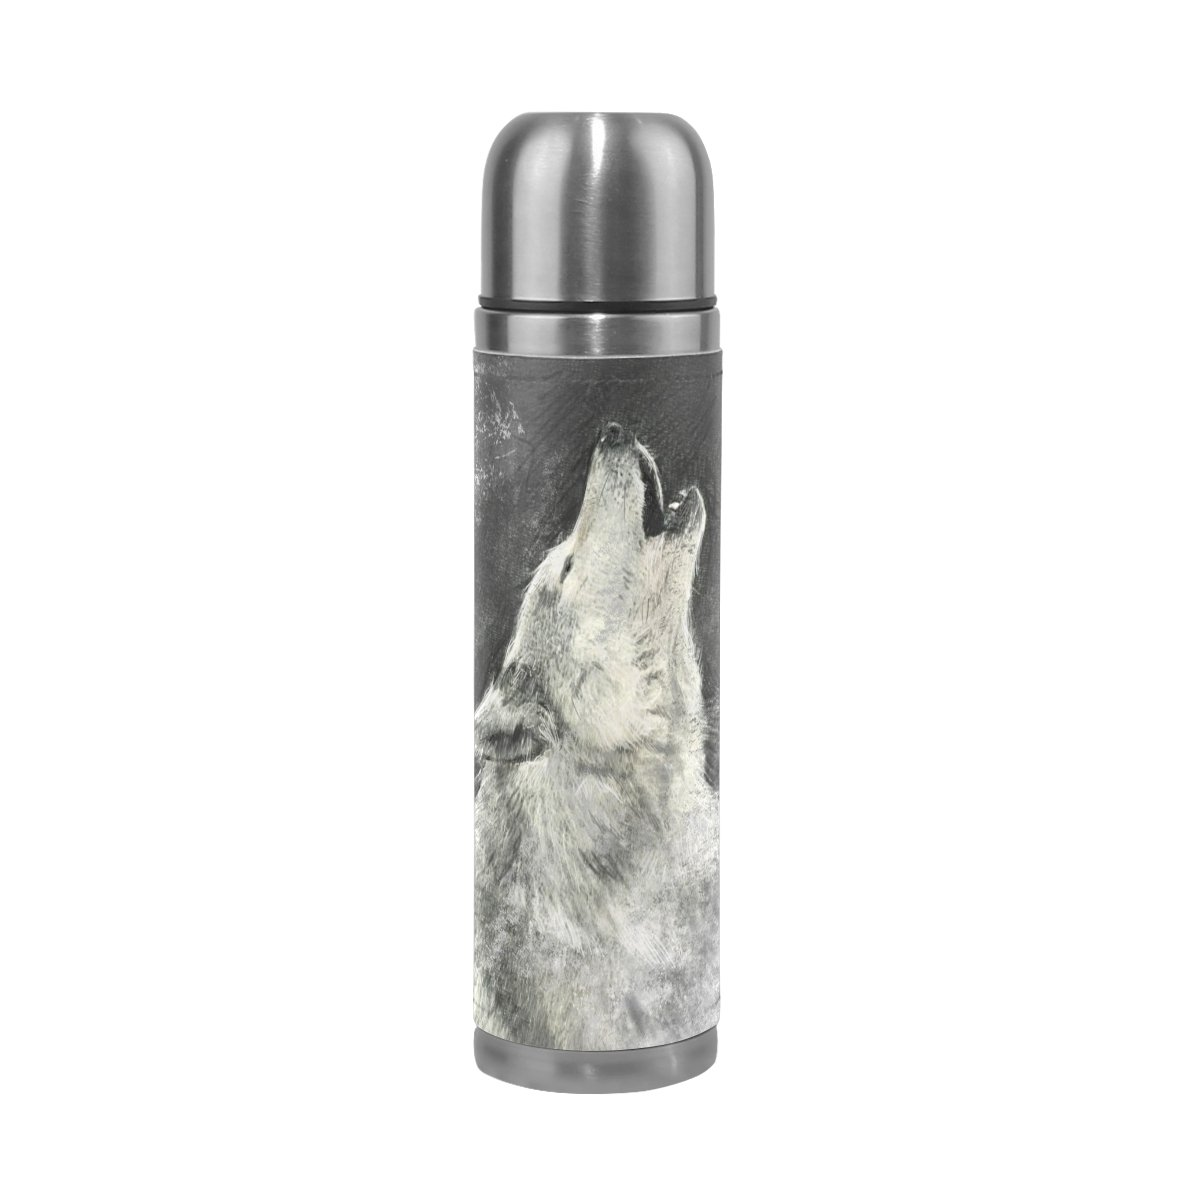 Grizzly Bear 18oz Vacuum Insulated Travel Tumbler